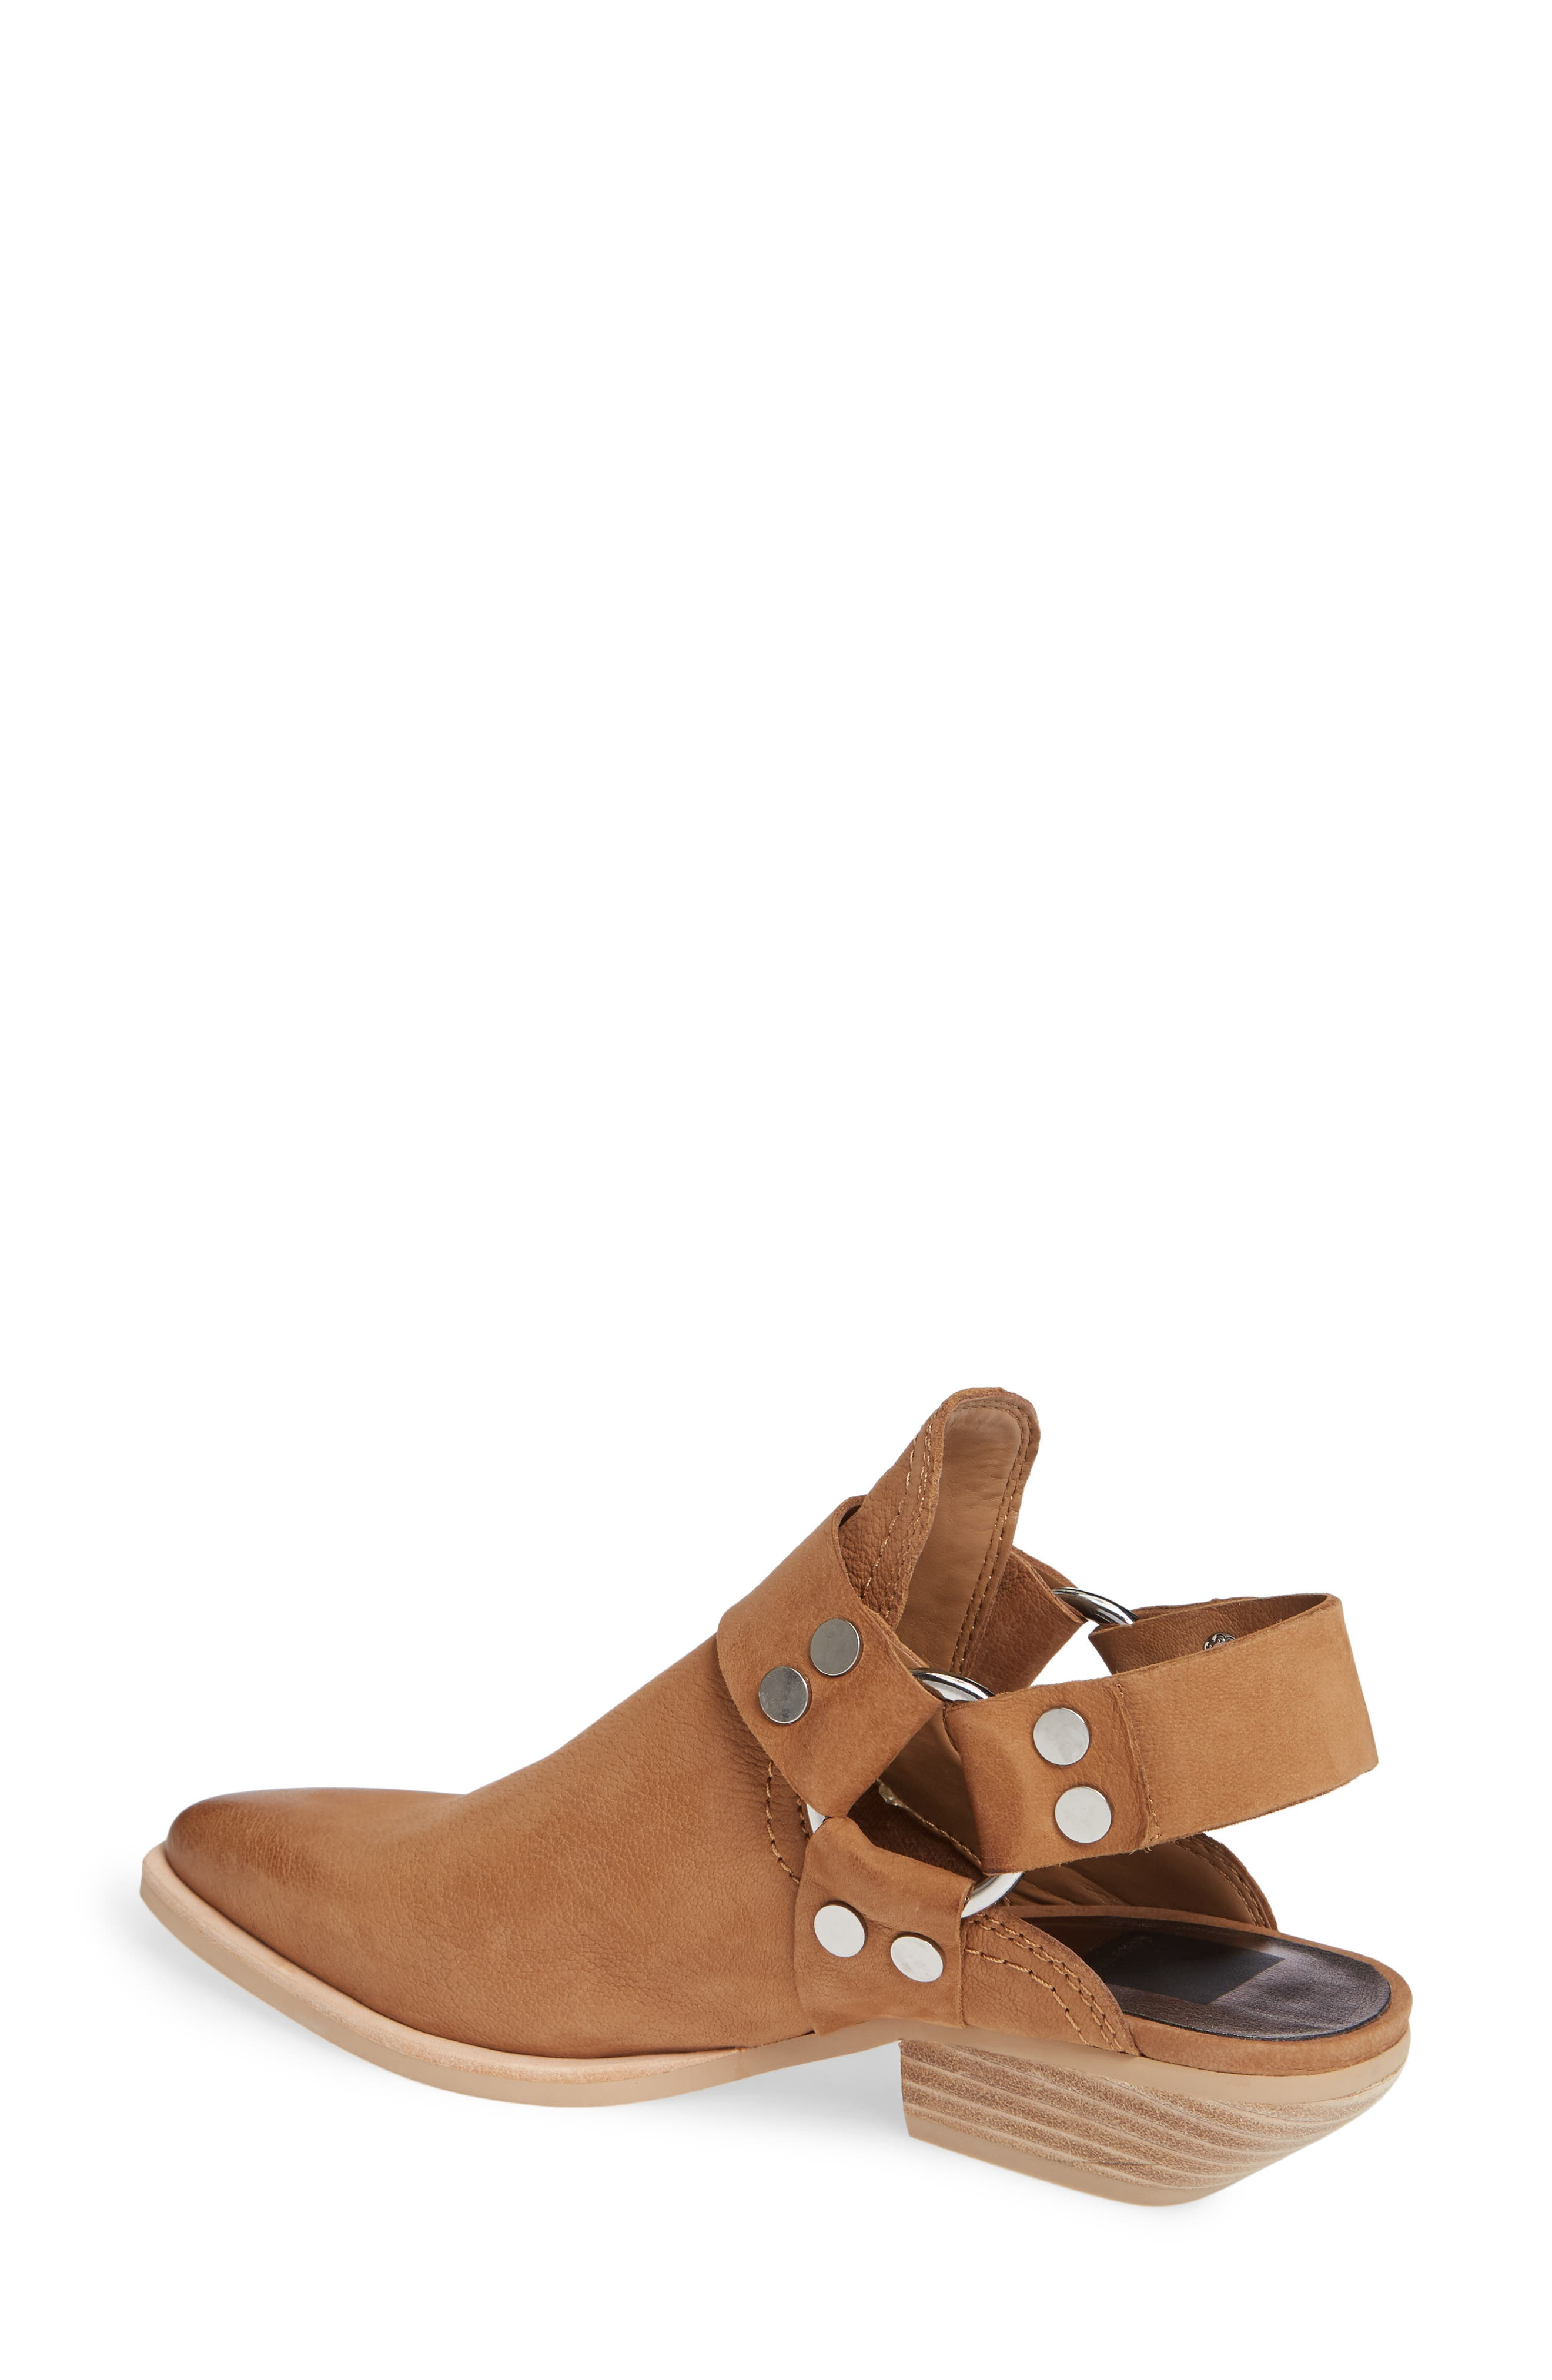 Urban Bootie,                             Alternate thumbnail 2, color,                             TAN NUBUCK LEATHER